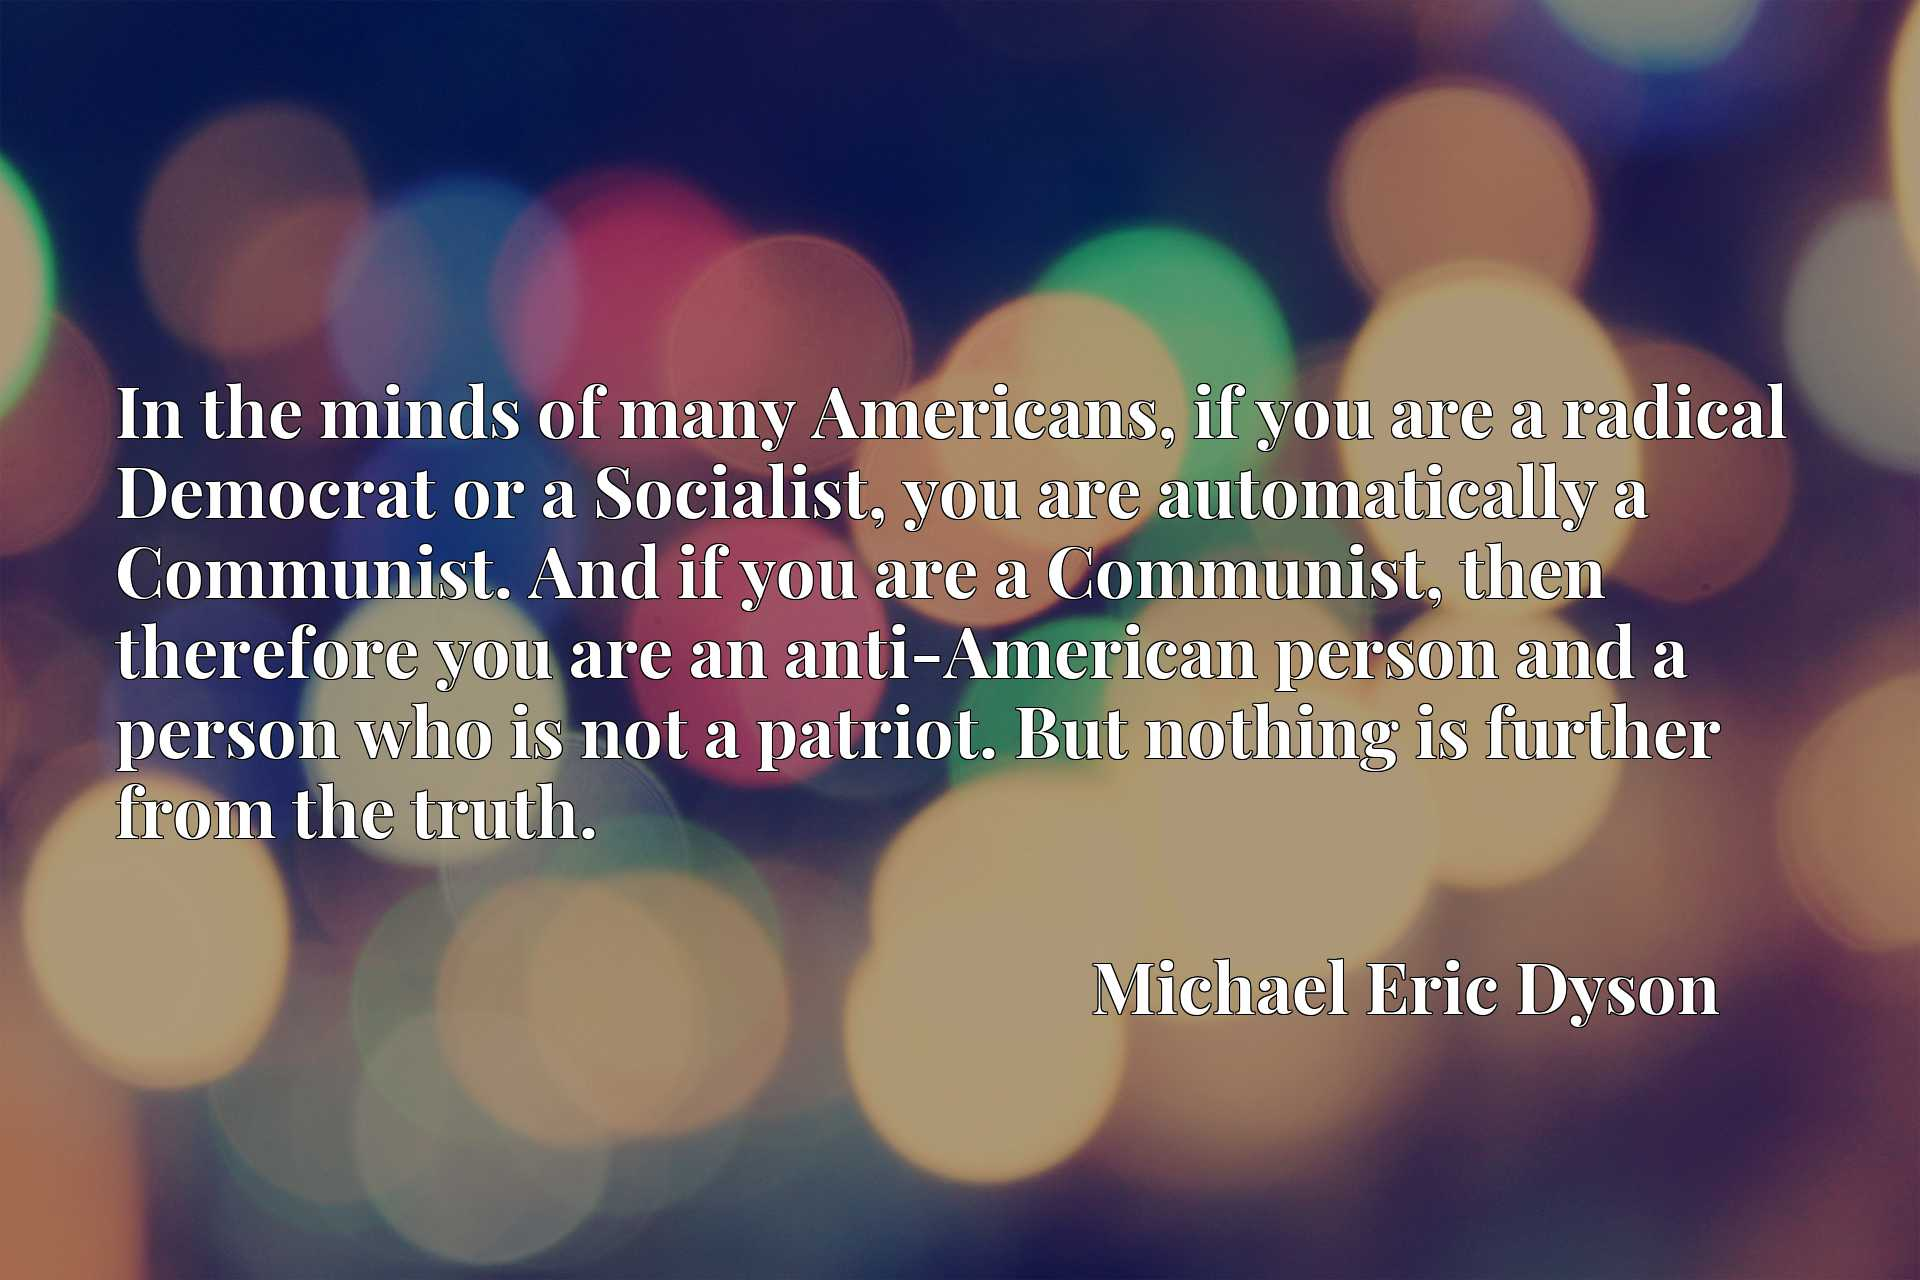 In the minds of many Americans, if you are a radical Democrat or a Socialist, you are automatically a Communist. And if you are a Communist, then therefore you are an anti-American person and a person who is not a patriot. But nothing is further from the truth.